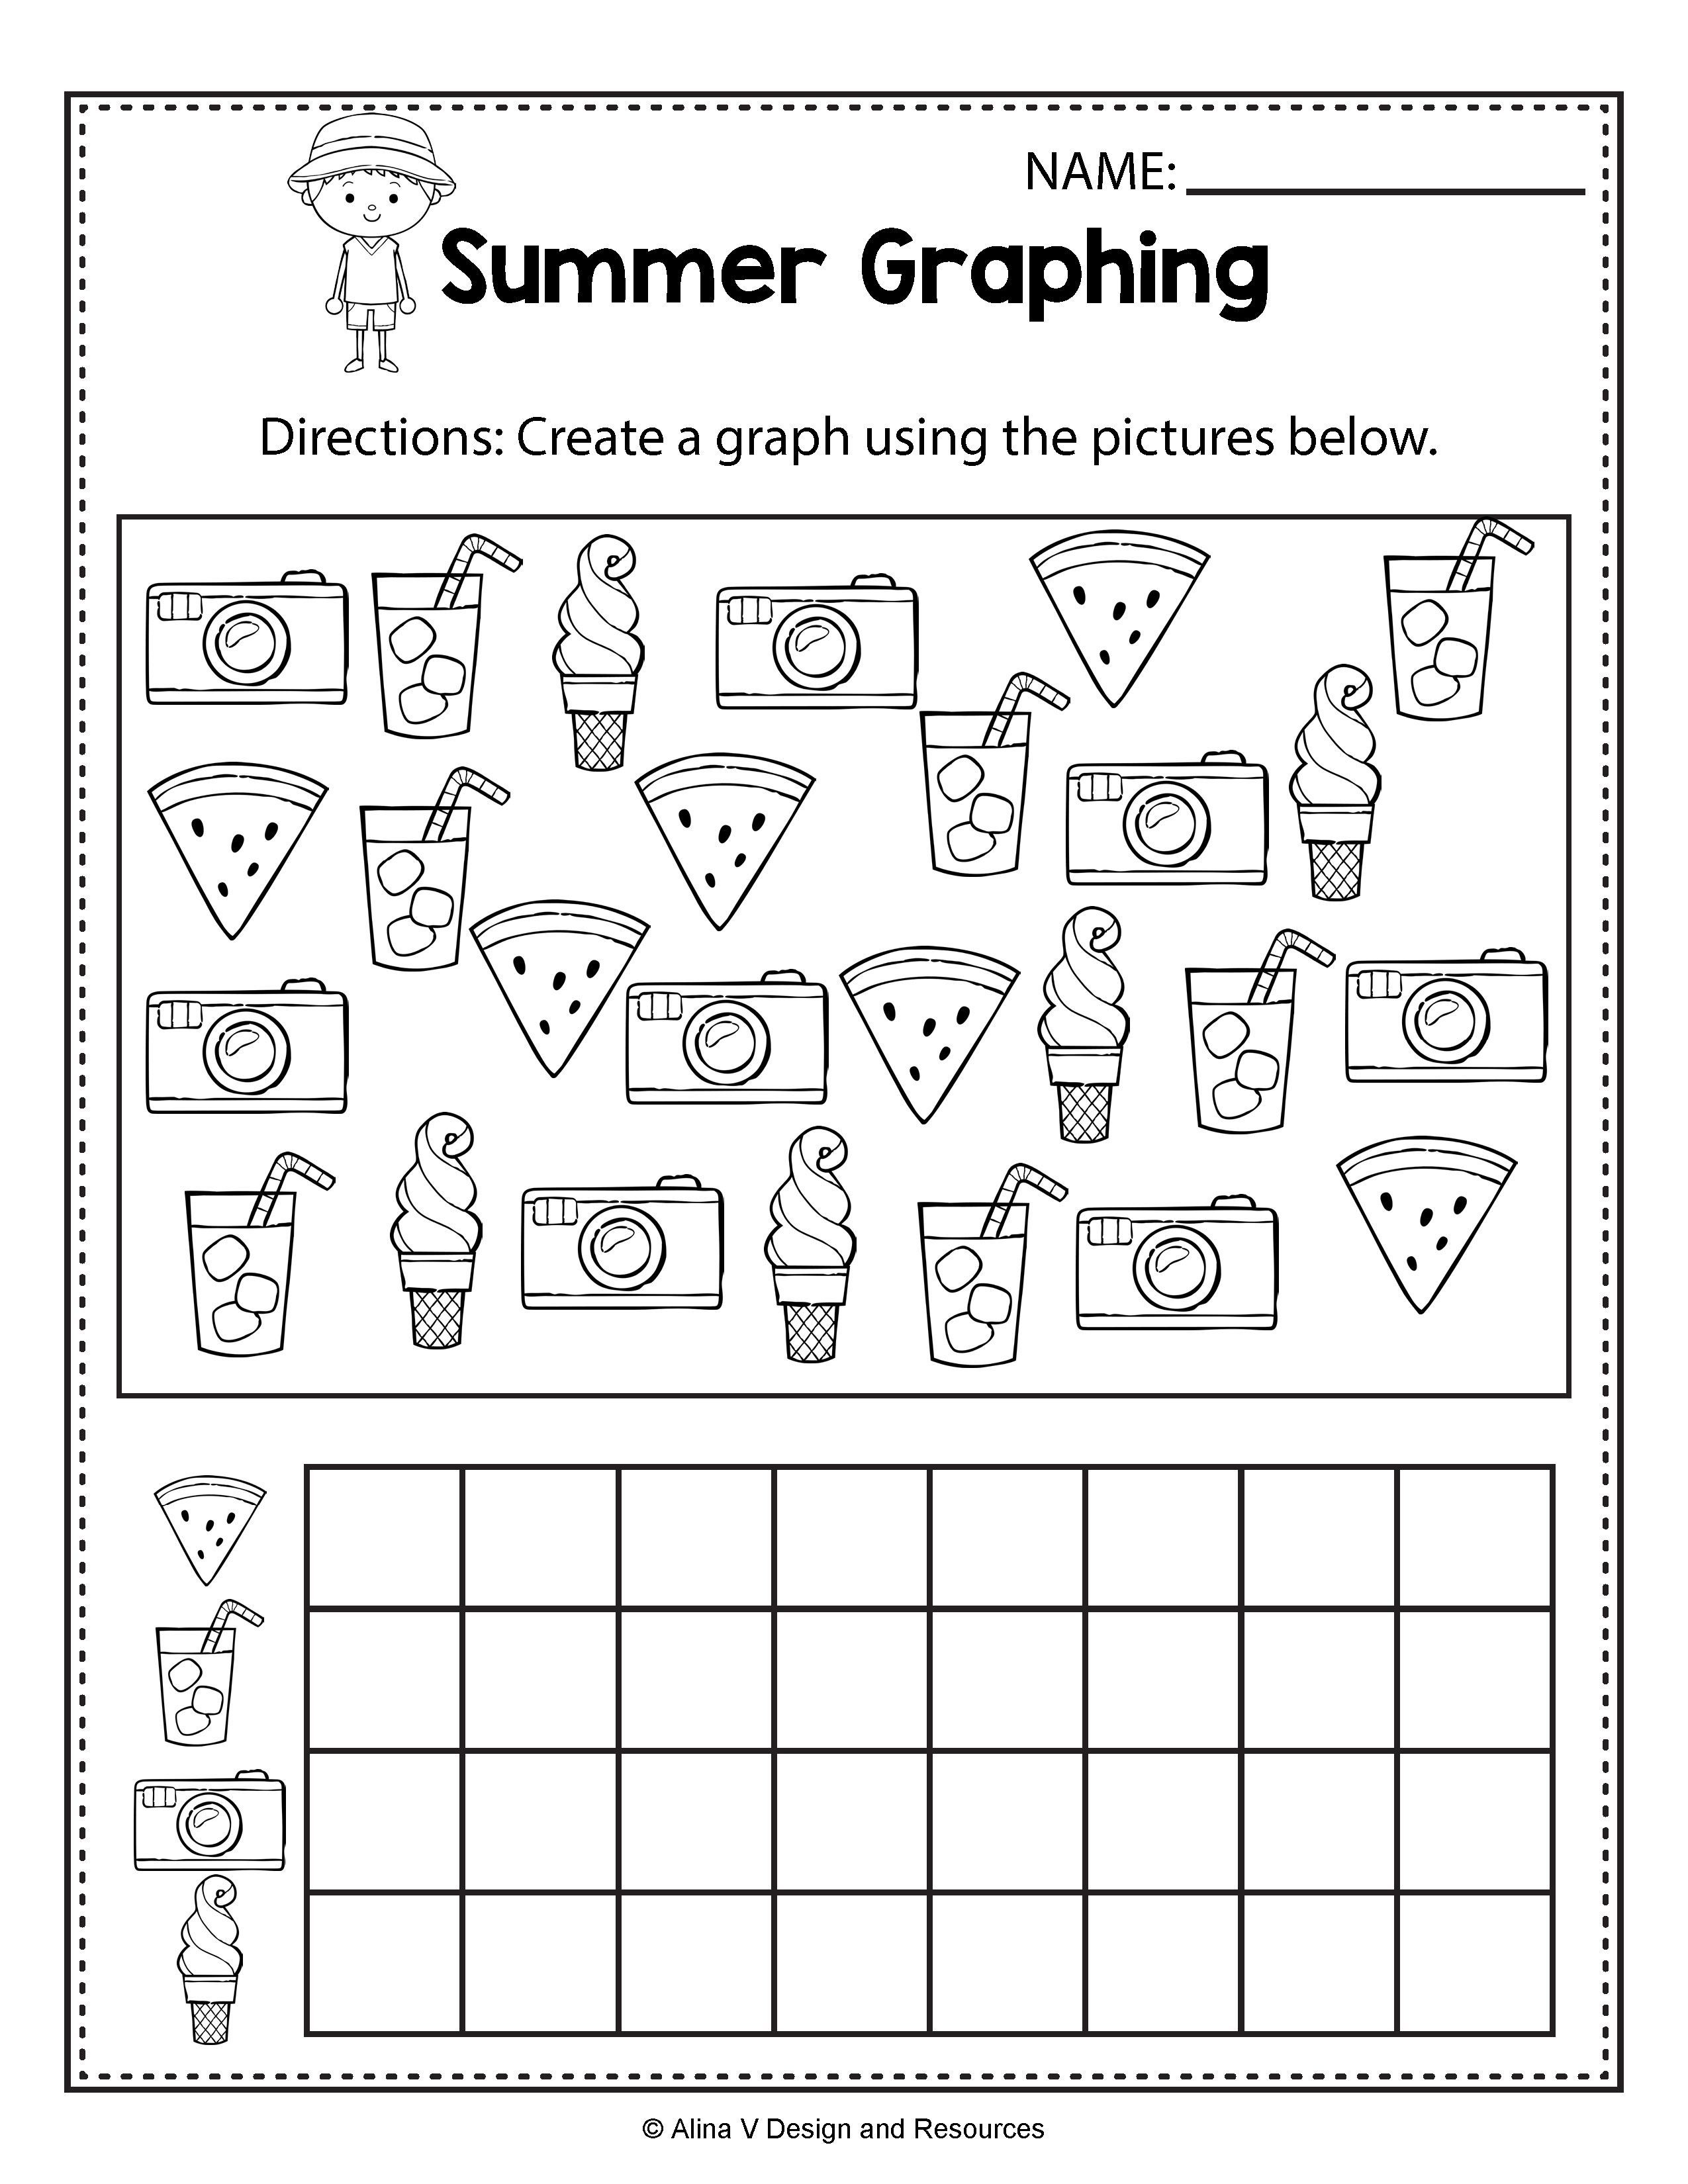 Summer Graphing - Summer Math Worksheets and activities for preschool [ 3300 x 2550 Pixel ]